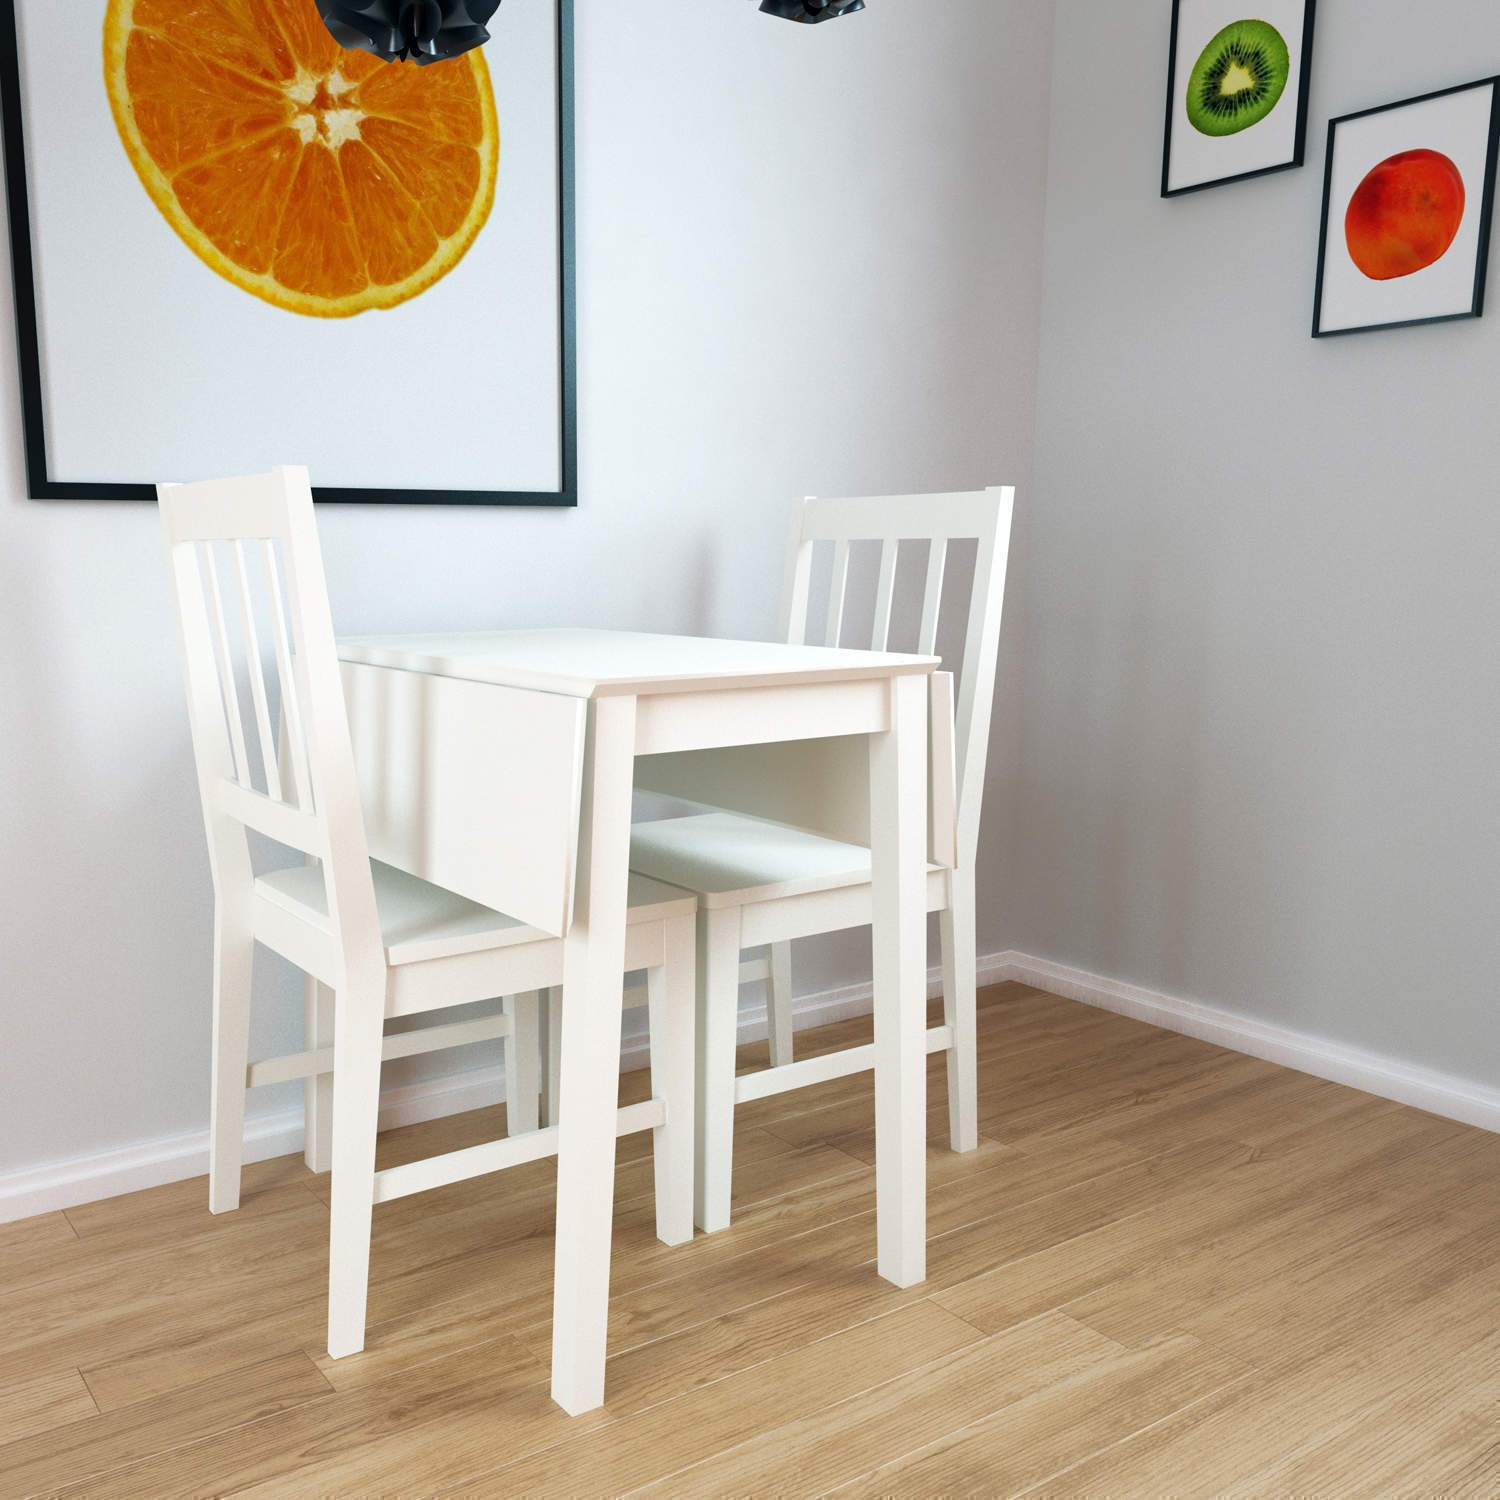 New haven drop leaf dining table in stone white nha011 ebay for White dining table with leaf